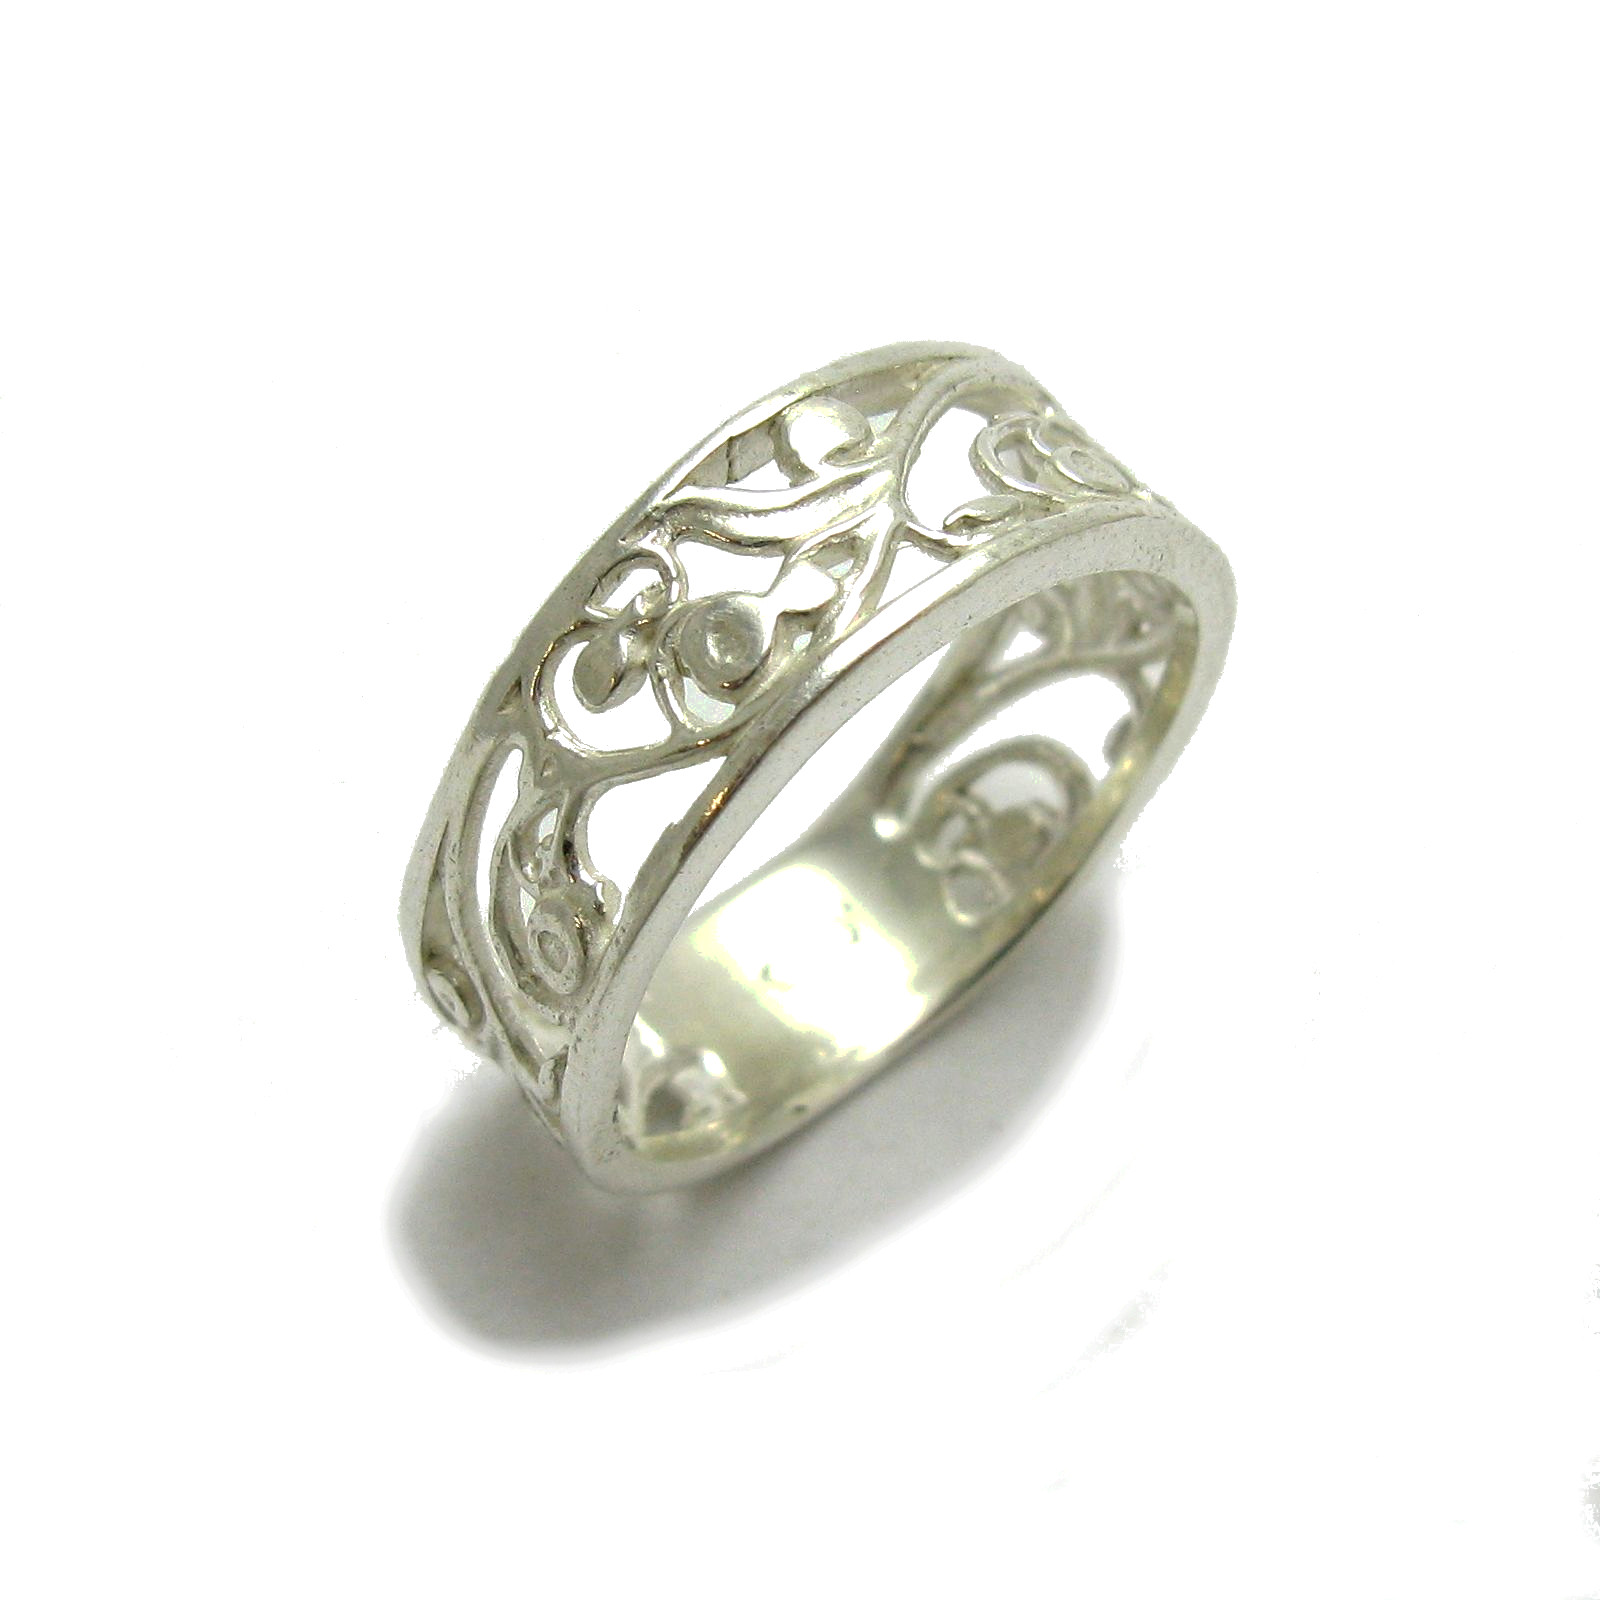 Silver ring - R001776